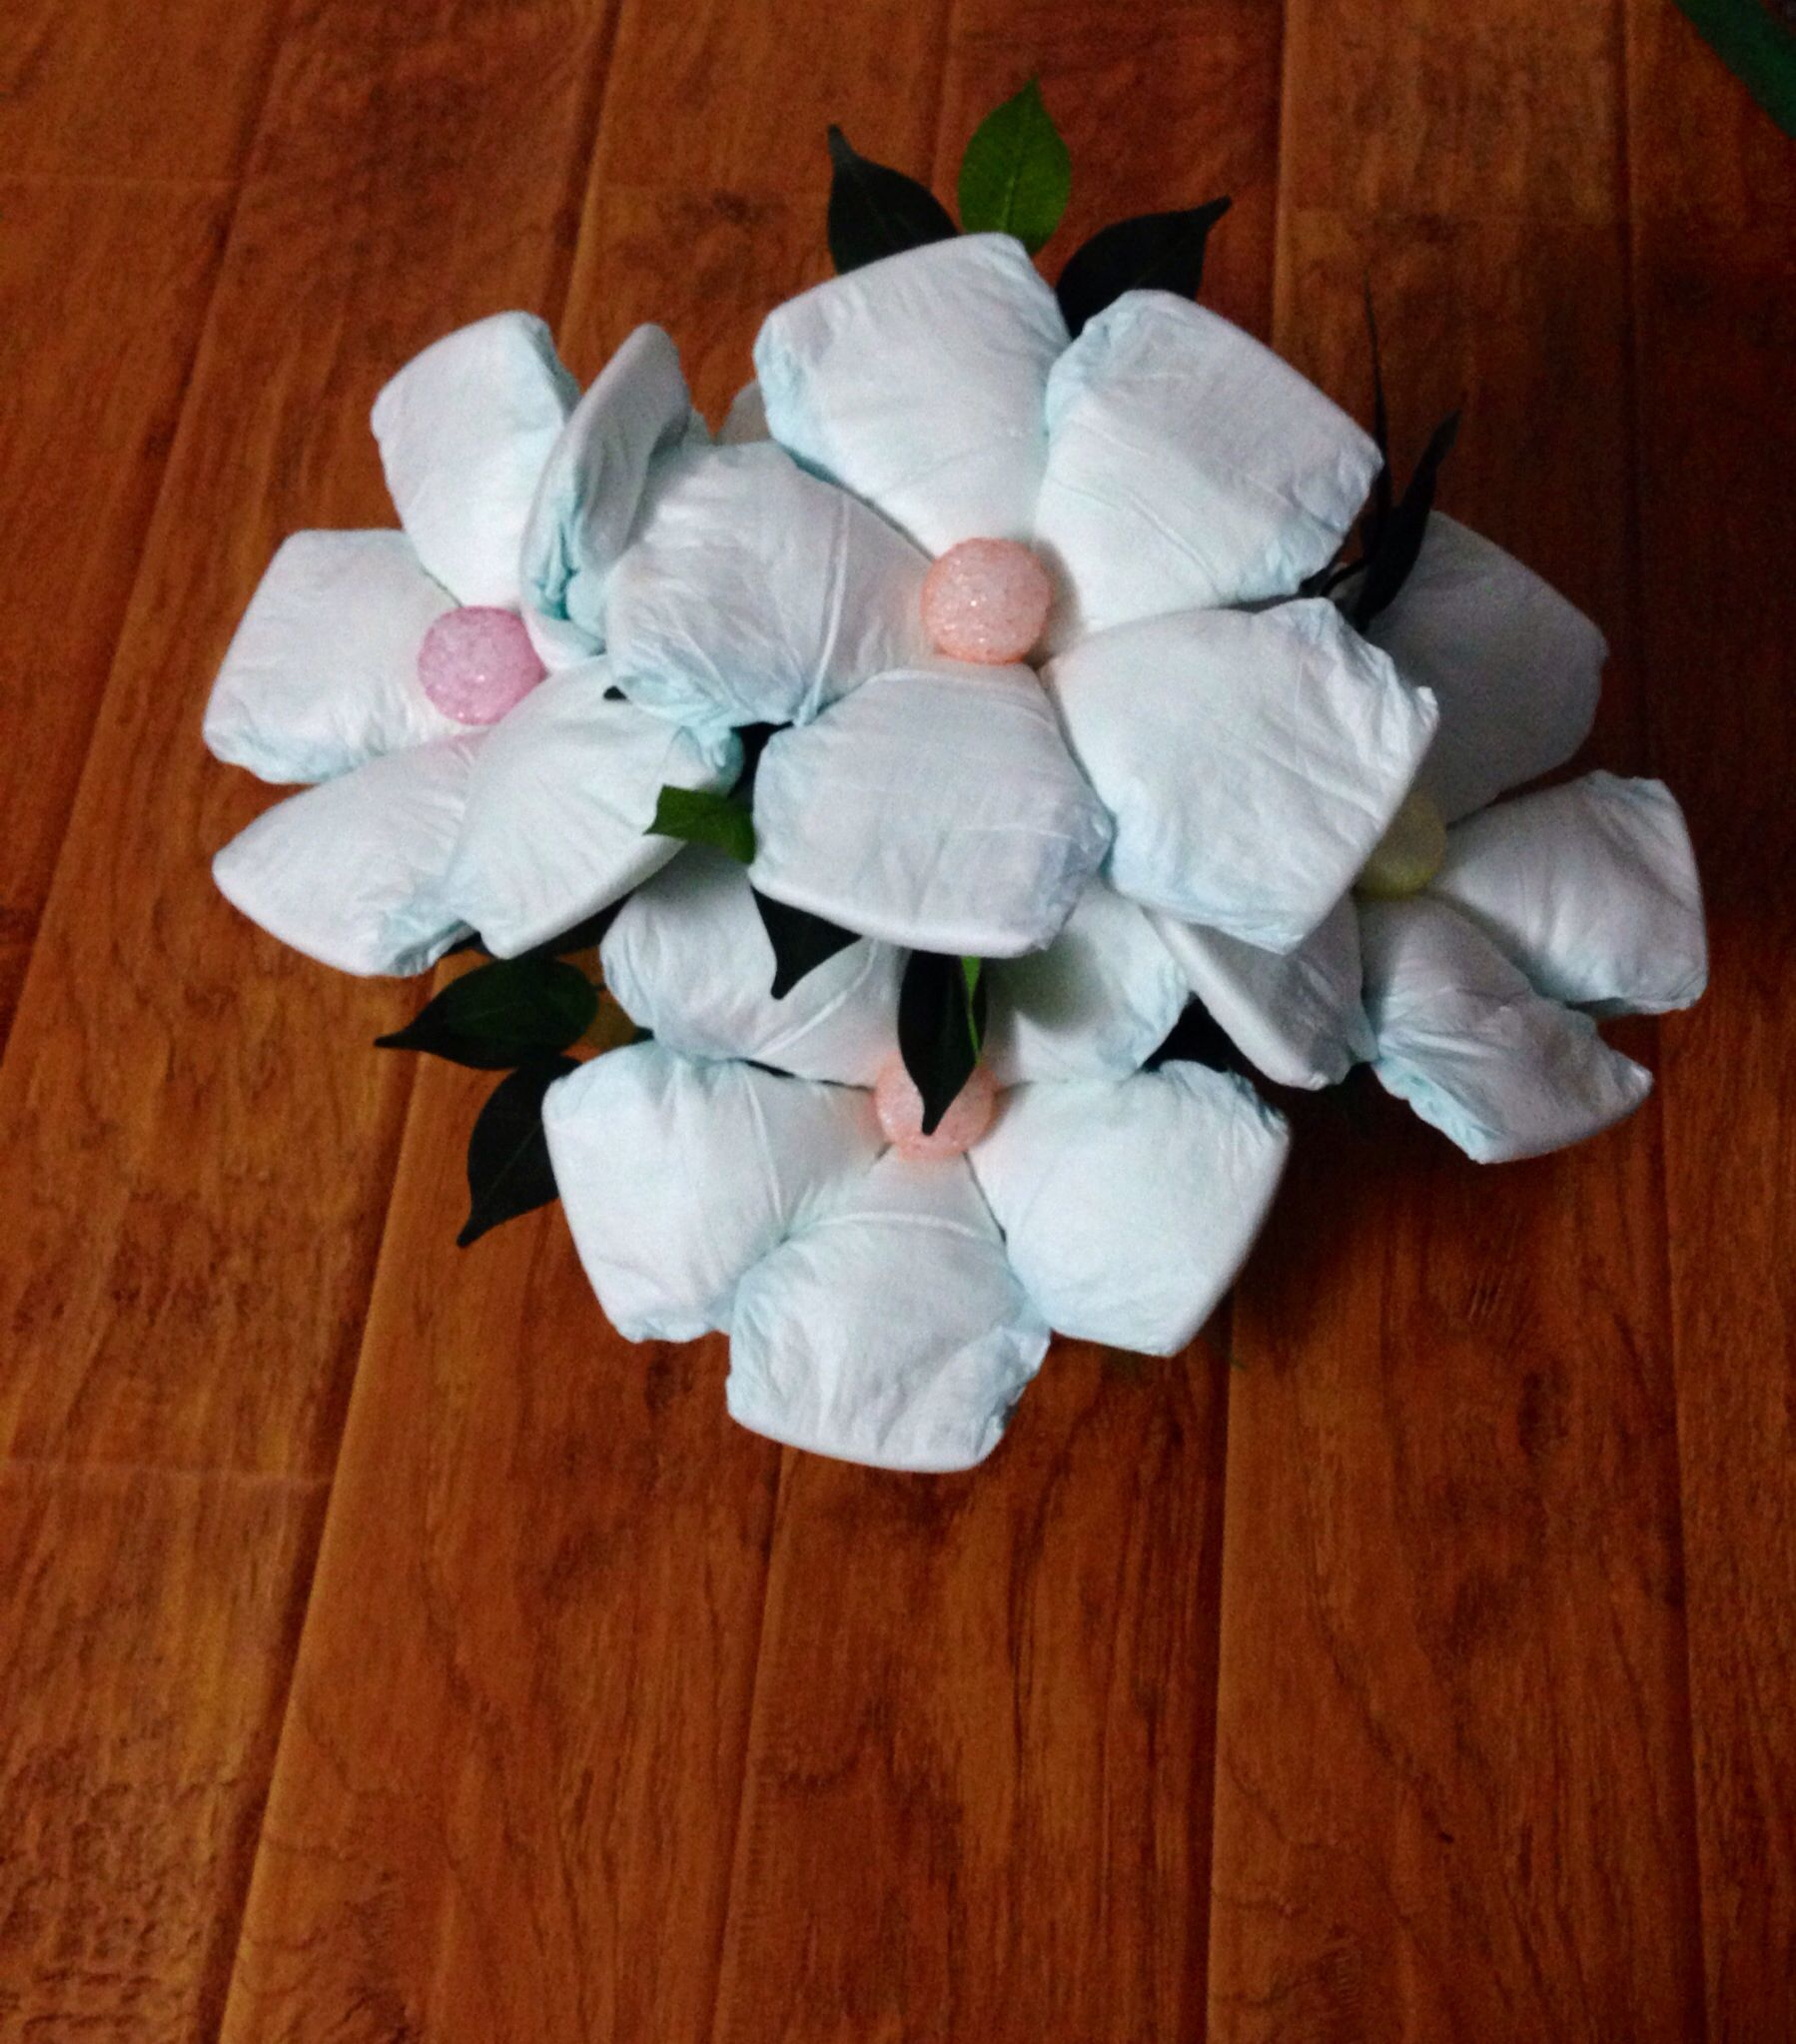 Diaper bouquet - with diaper flowers! | Baby Bouquet ... - photo#15